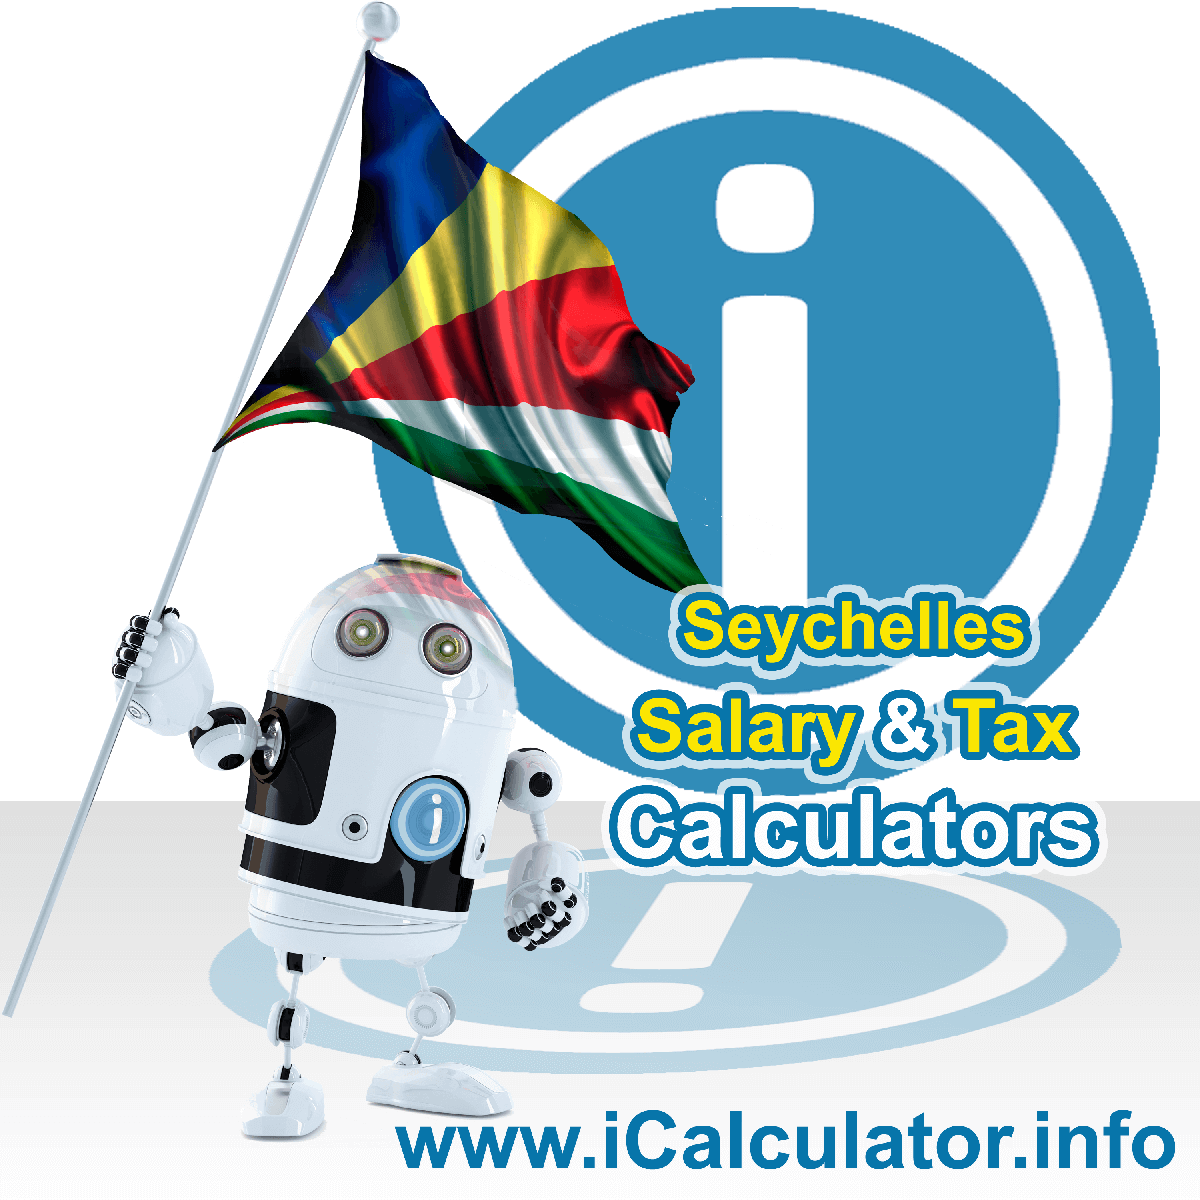 Seychelles Salary Calculator. This image shows the Seychellesese flag and information relating to the tax formula for the Seychelles Tax Calculator